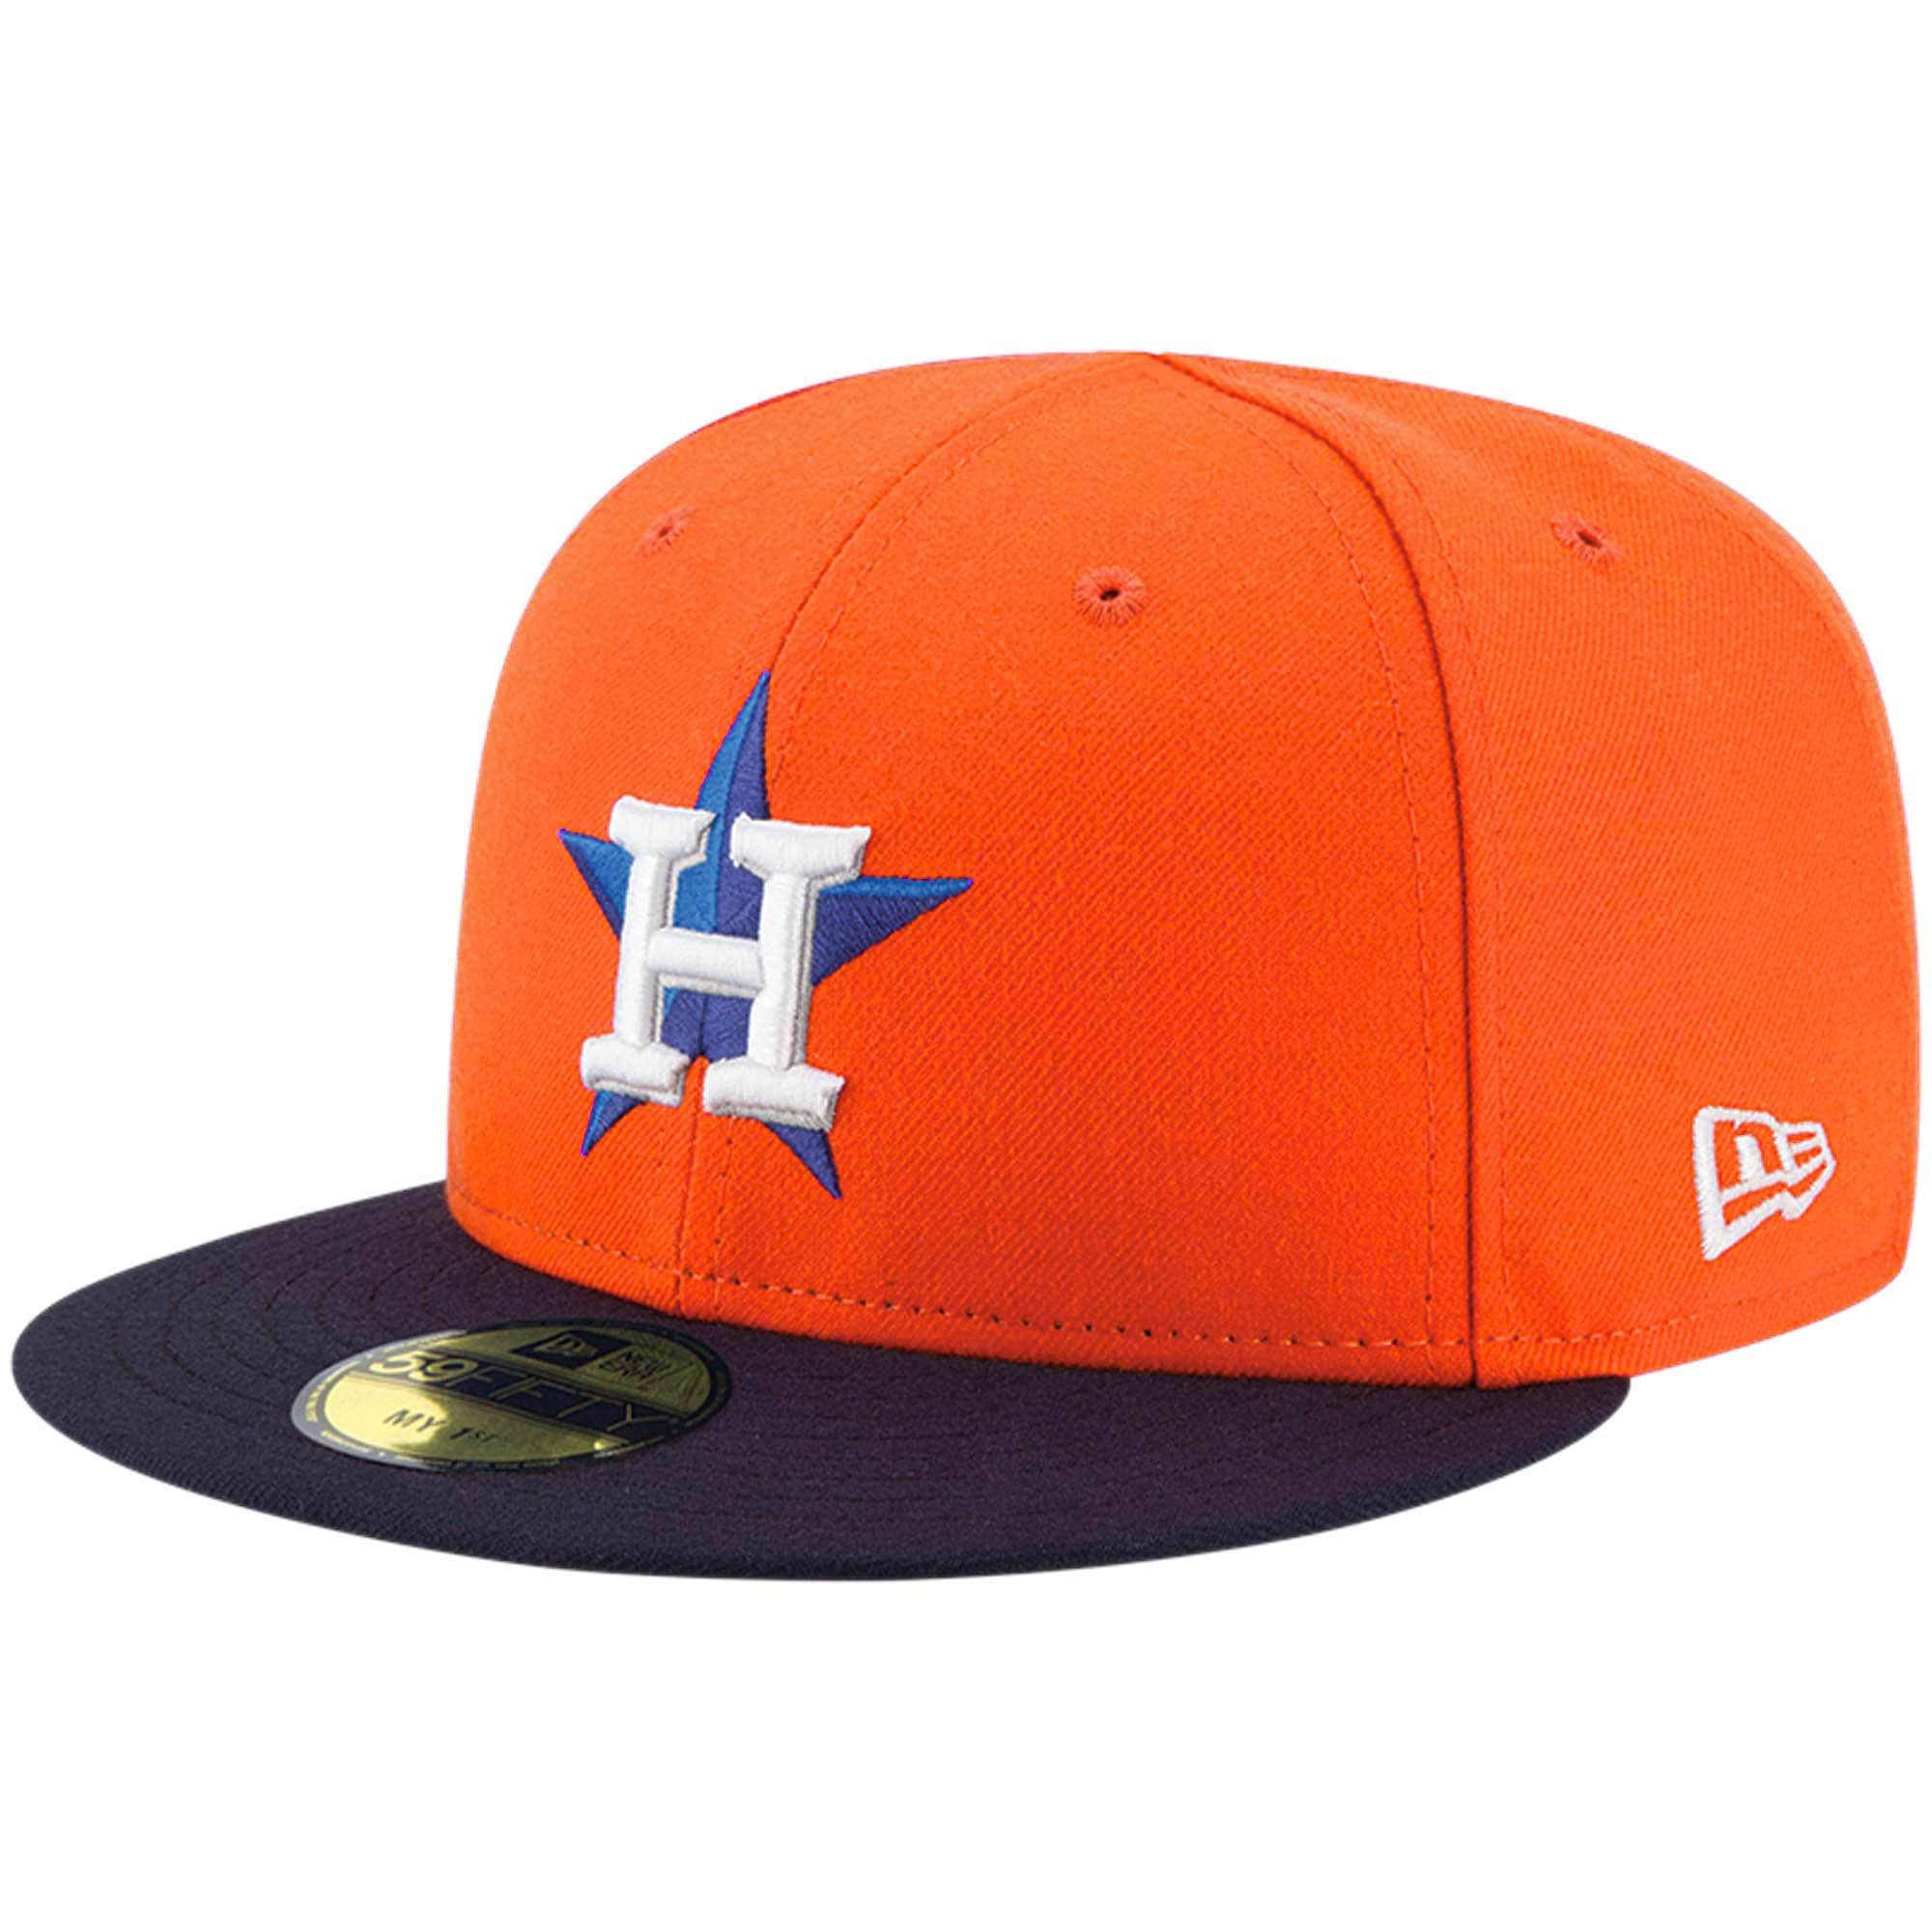 Houston Astros New Era Infant Authentic Collection On-Field My First 59FIFTY Fitted Hat - Orange